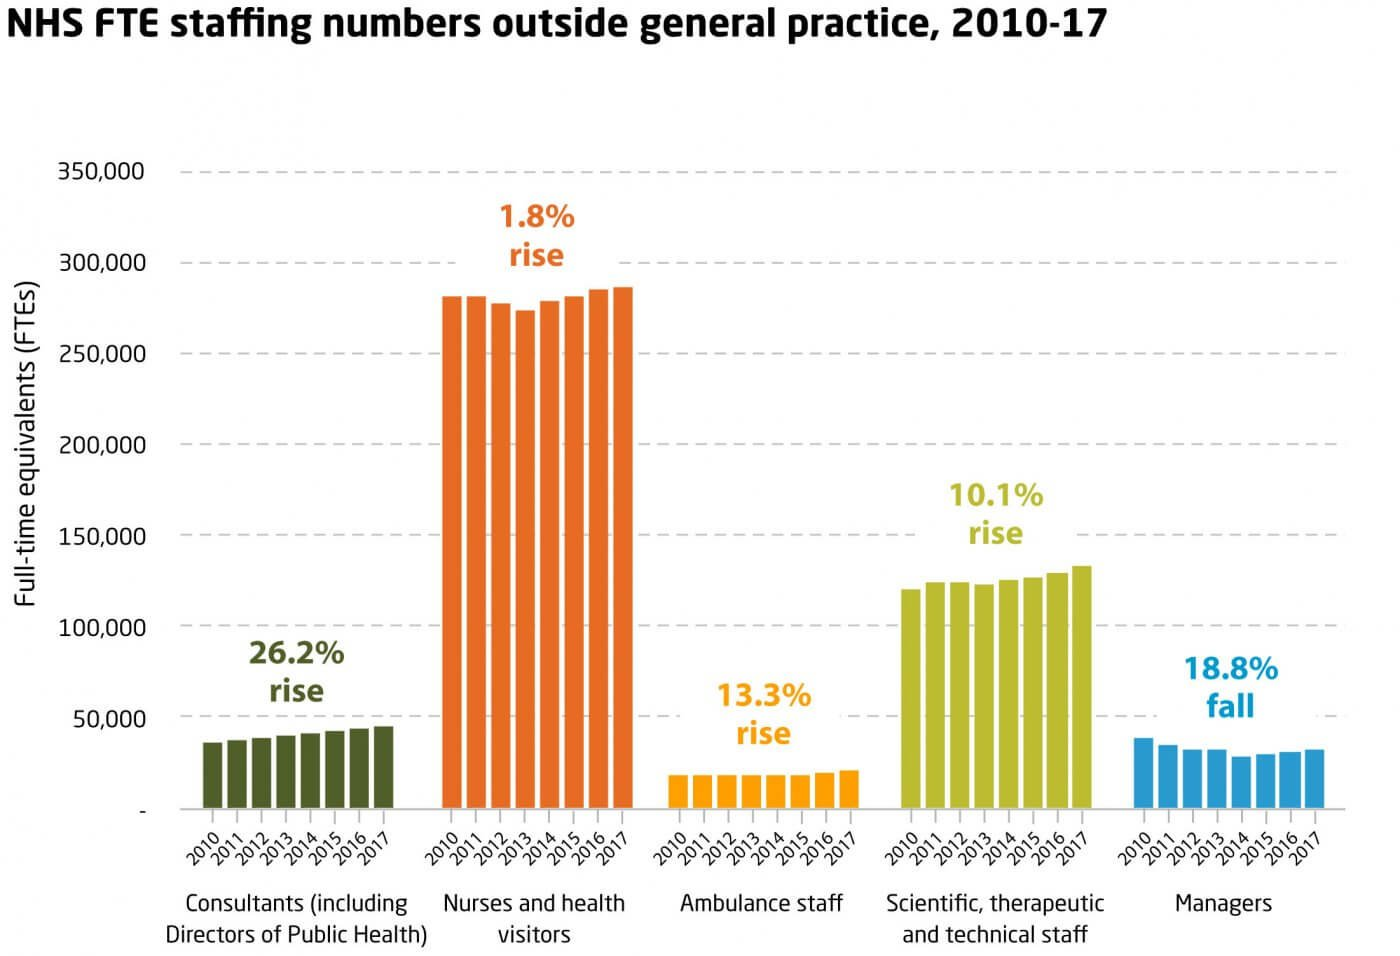 Chart showing trends in NHS staffing numbers outside general practice between 2010 and 2017. This data is available to download as a table at the end of this step.